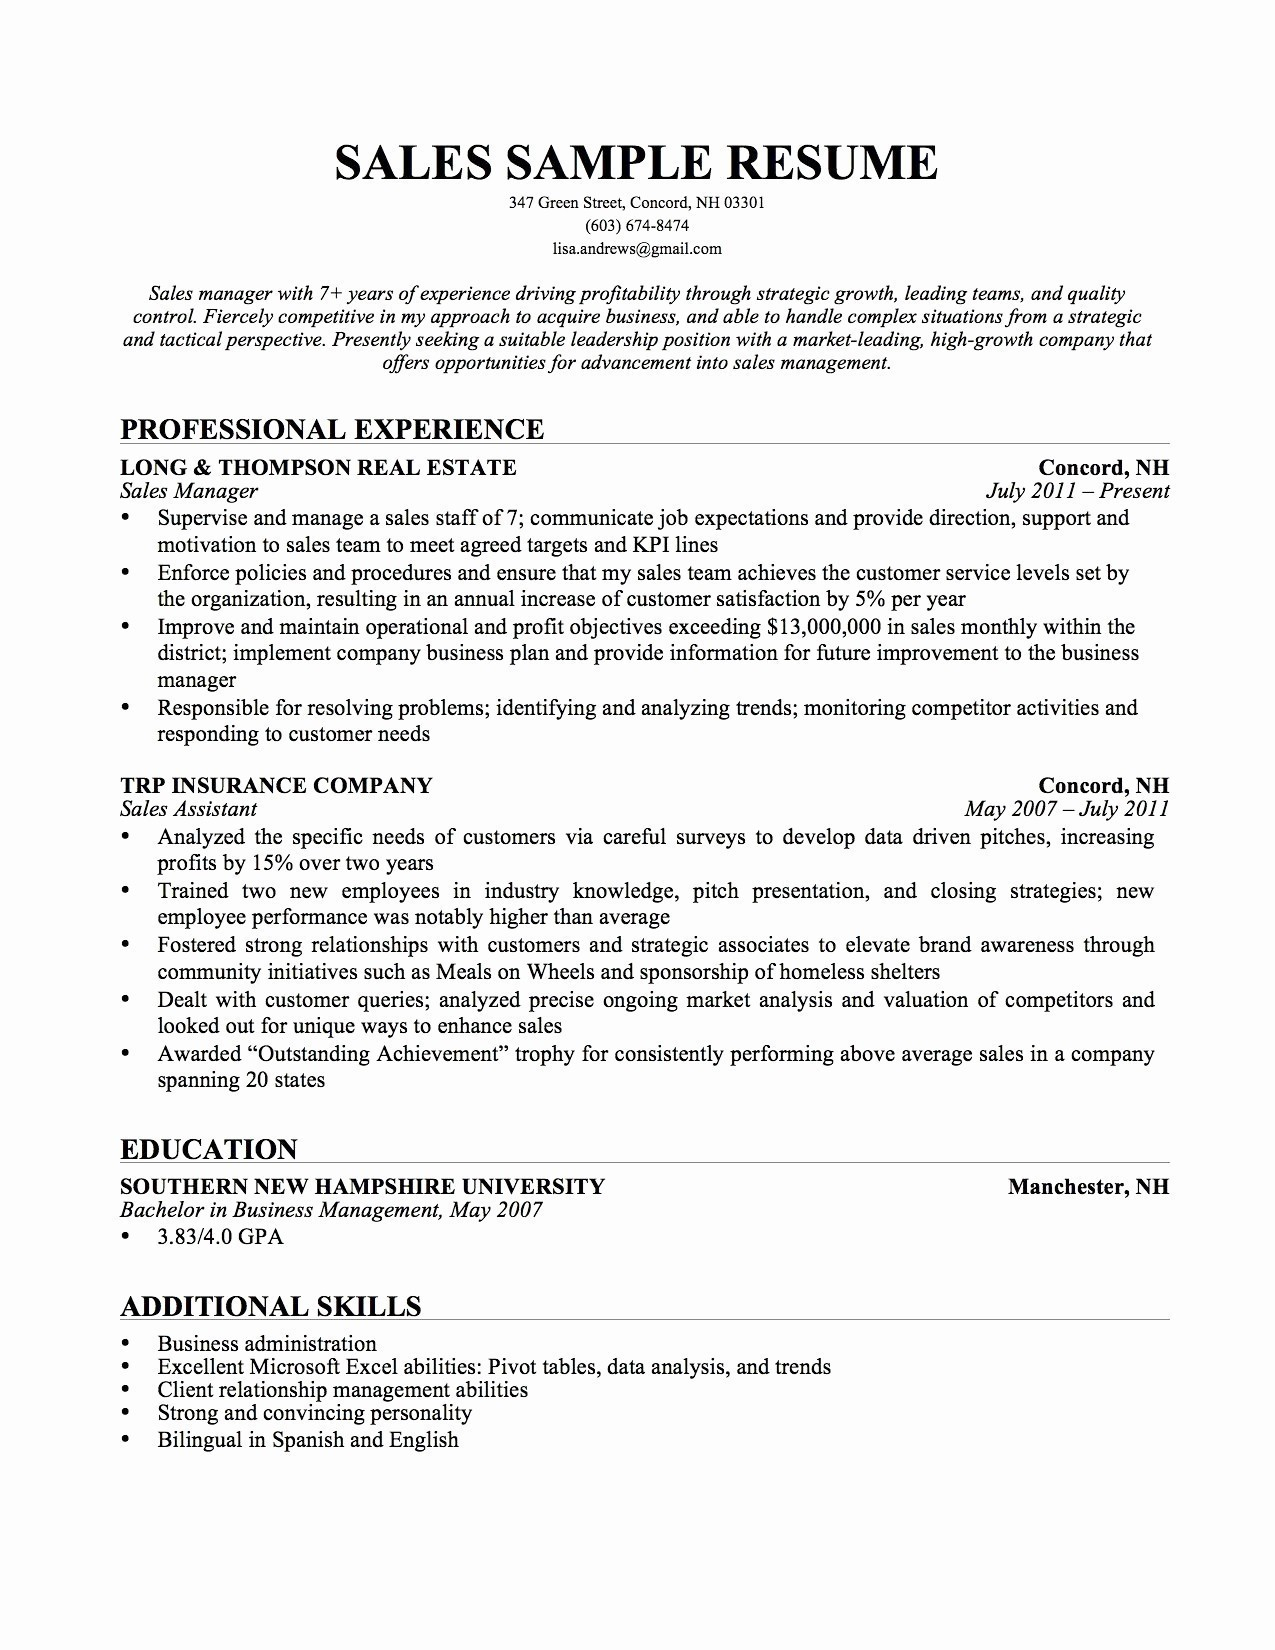 Resume About Me - How Do I Write A Resume Awesome Resume About Me Best Business